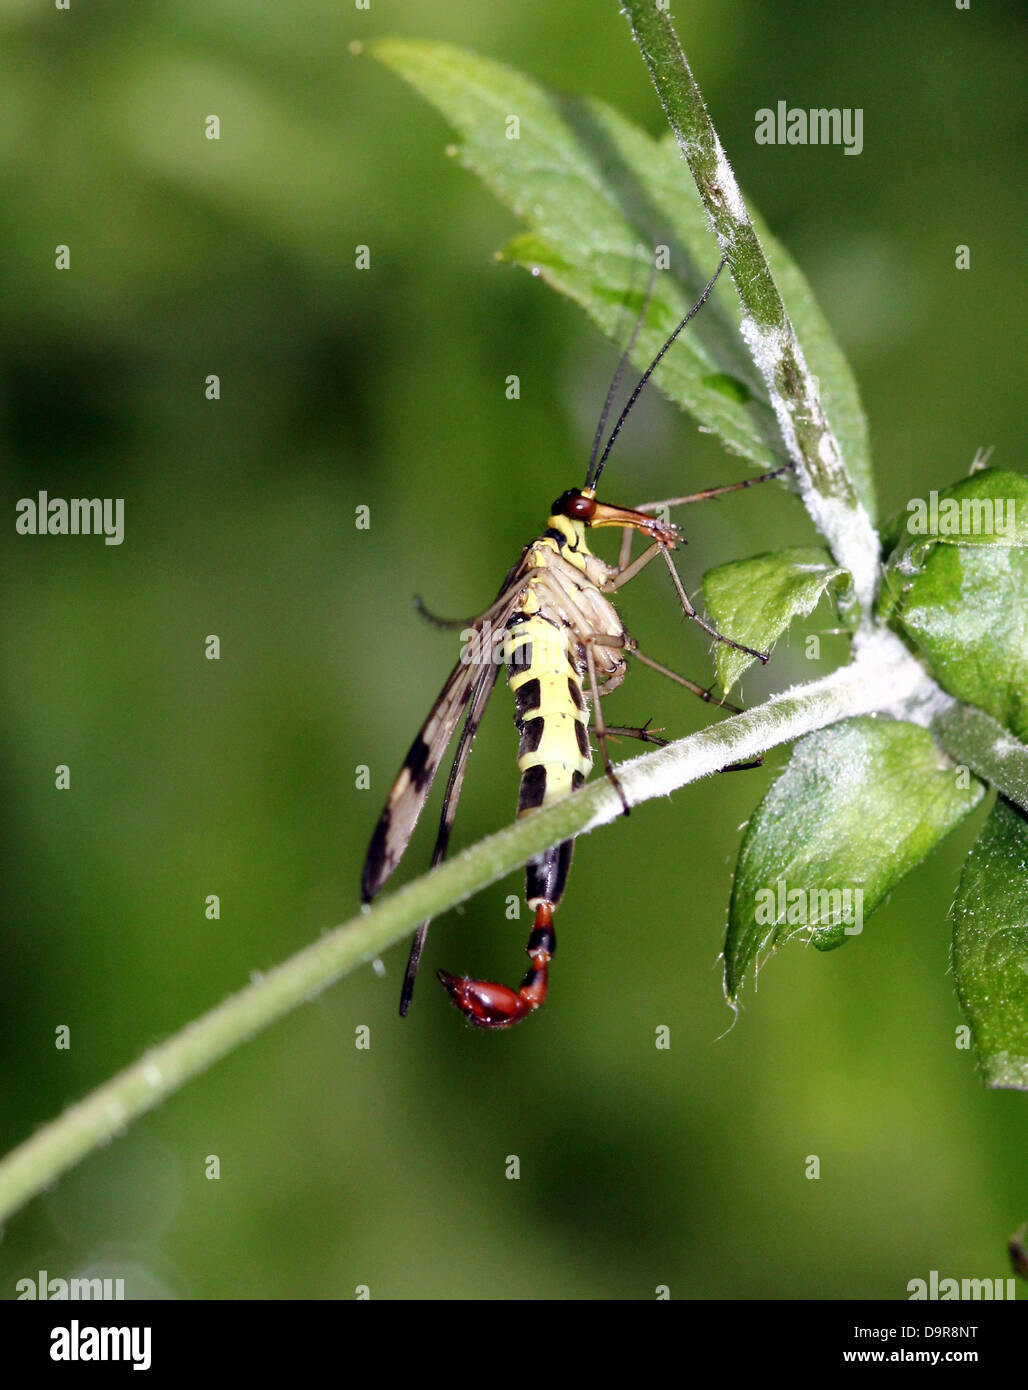 Close-up of a male common scorpionfly ( Panorpa communis) with its scorpion-like tail fully visible Stock Photo